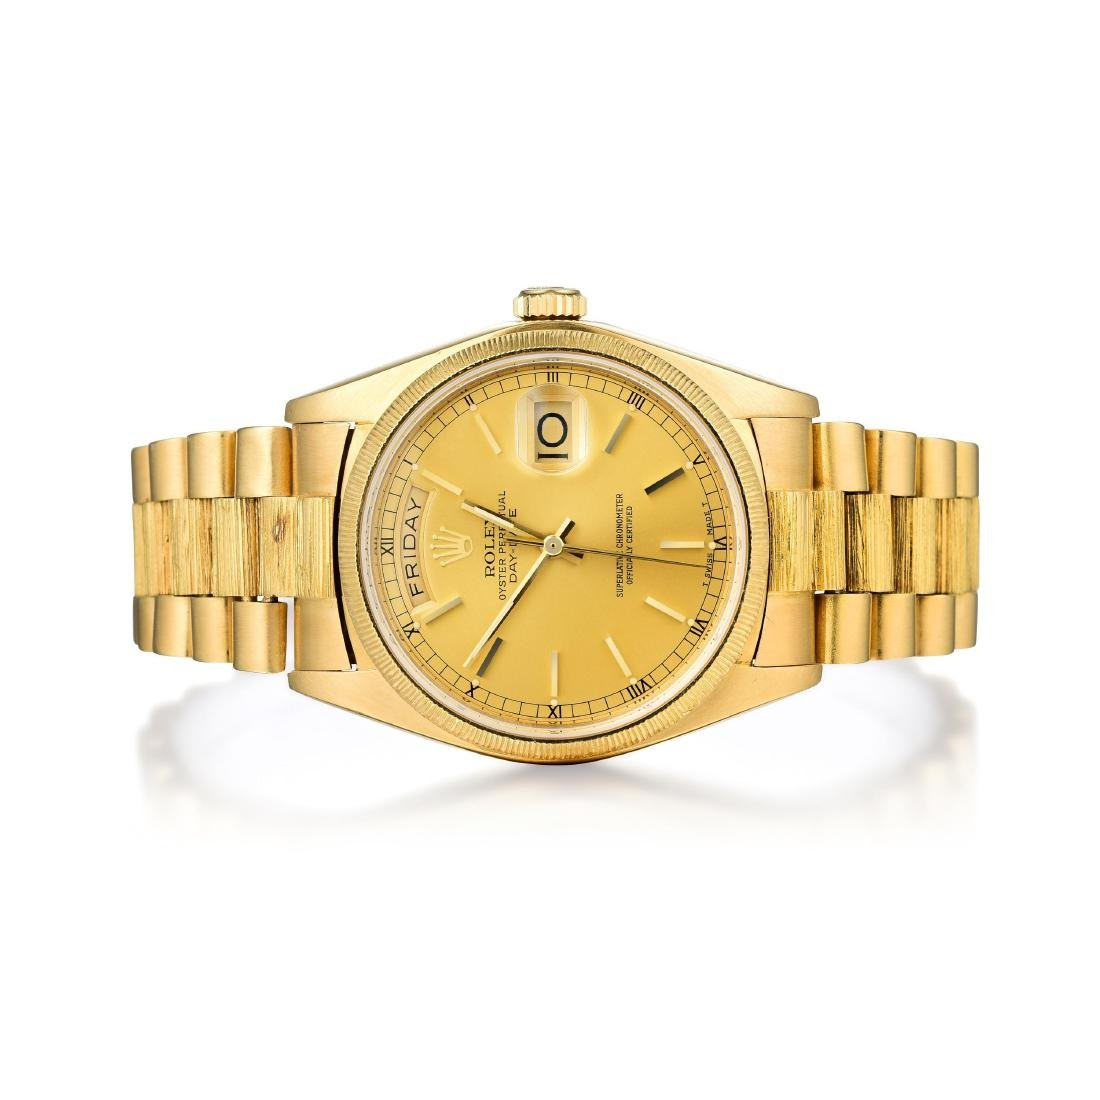 Rolex Gold Oyster Perpetual Day-Date Gentleman's Watch